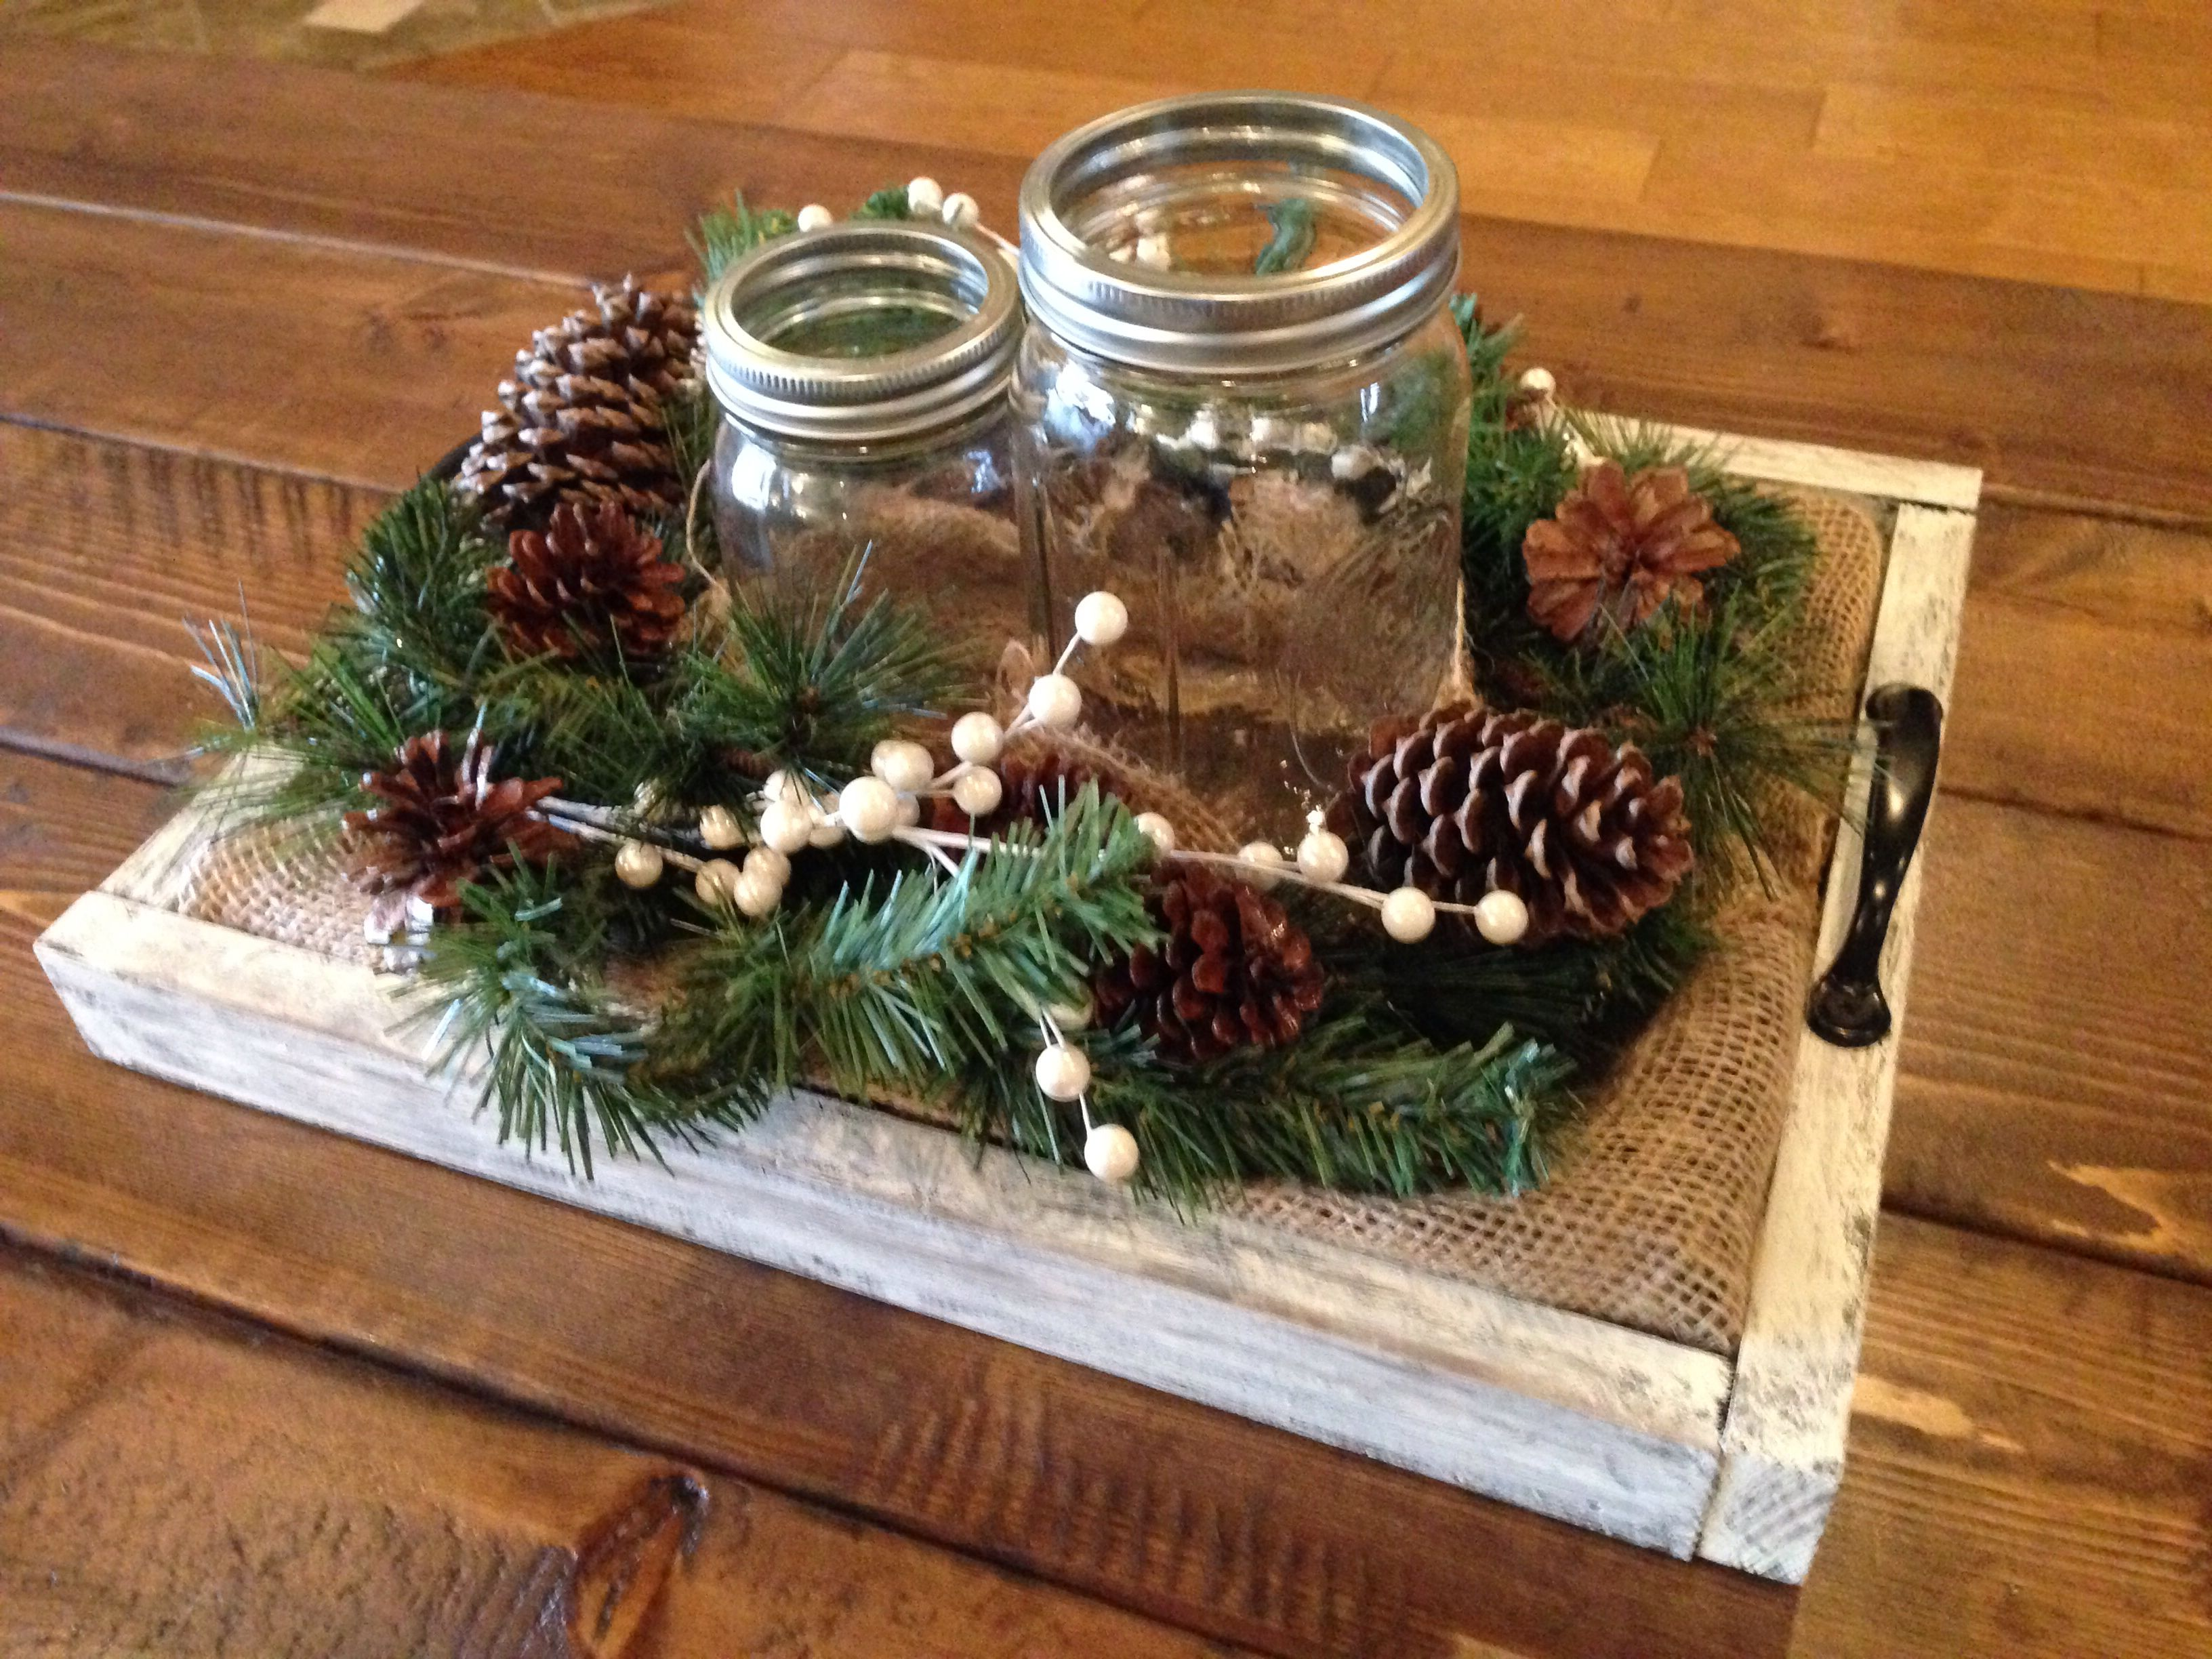 Coffee Table Tray Add Candles Christmas Tray Rustic Christmas Coffee Table Decor Tray